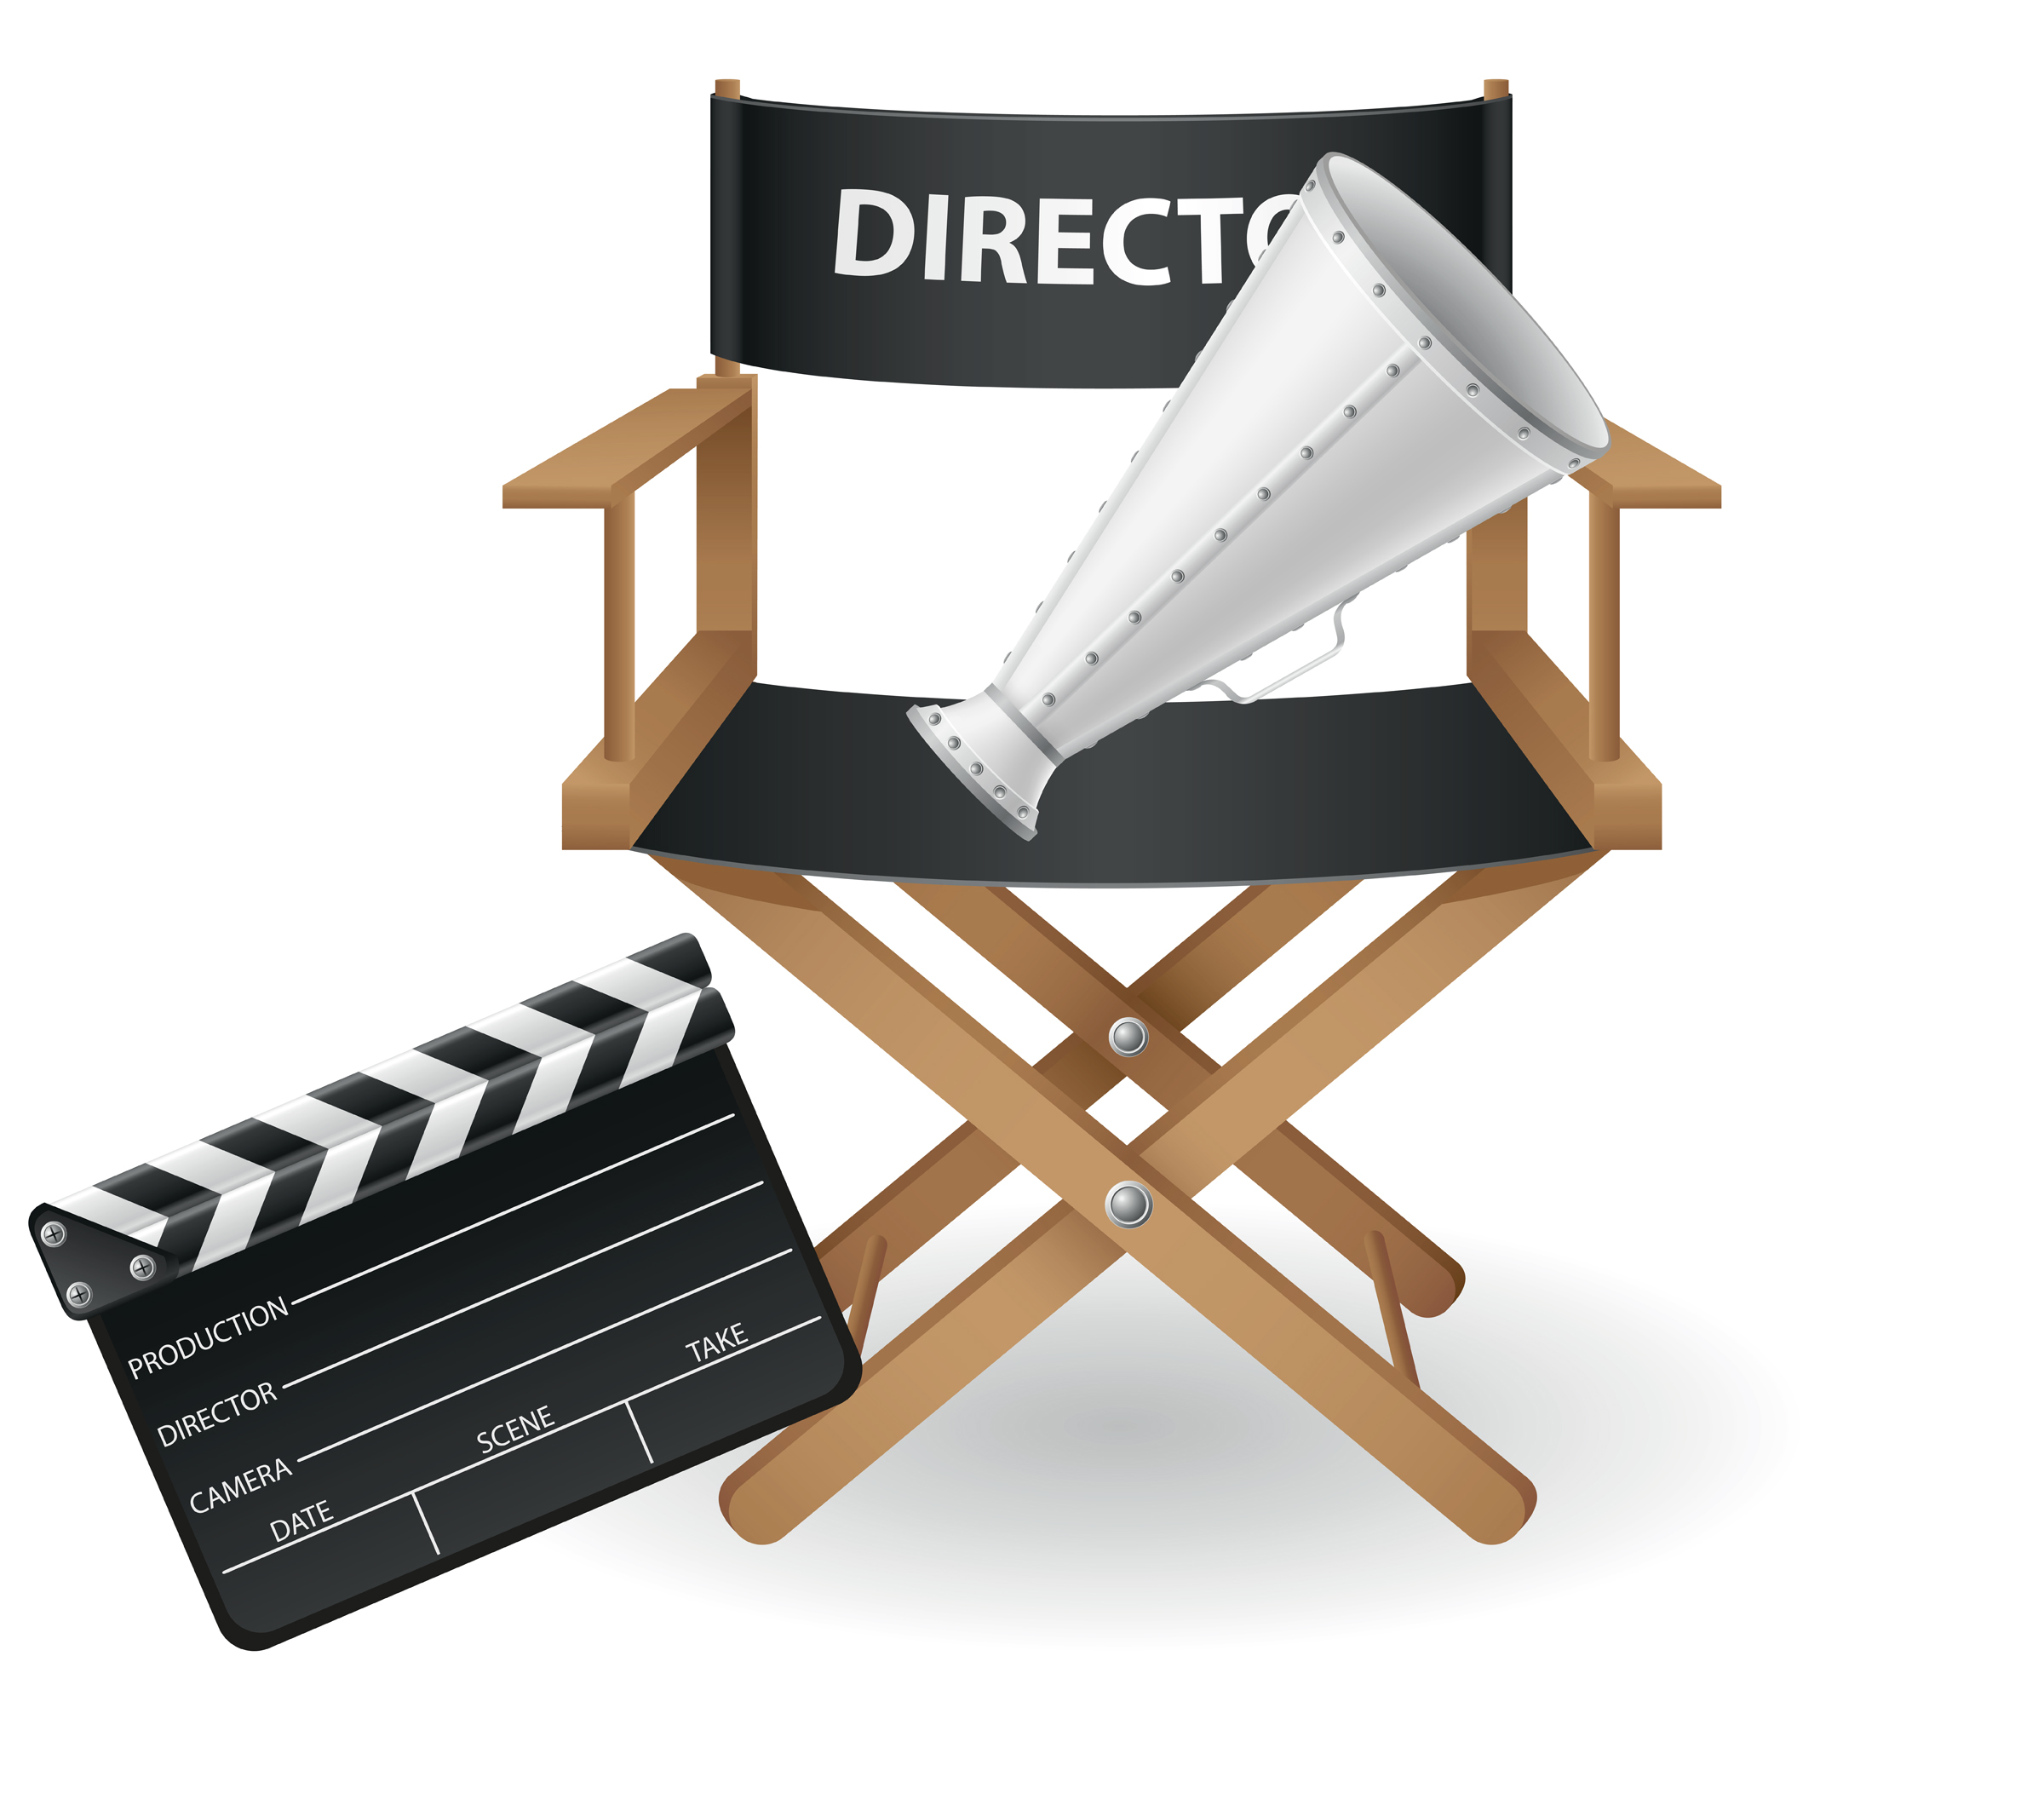 Living Your Life From the Director's Chair – Stop the Blame Game